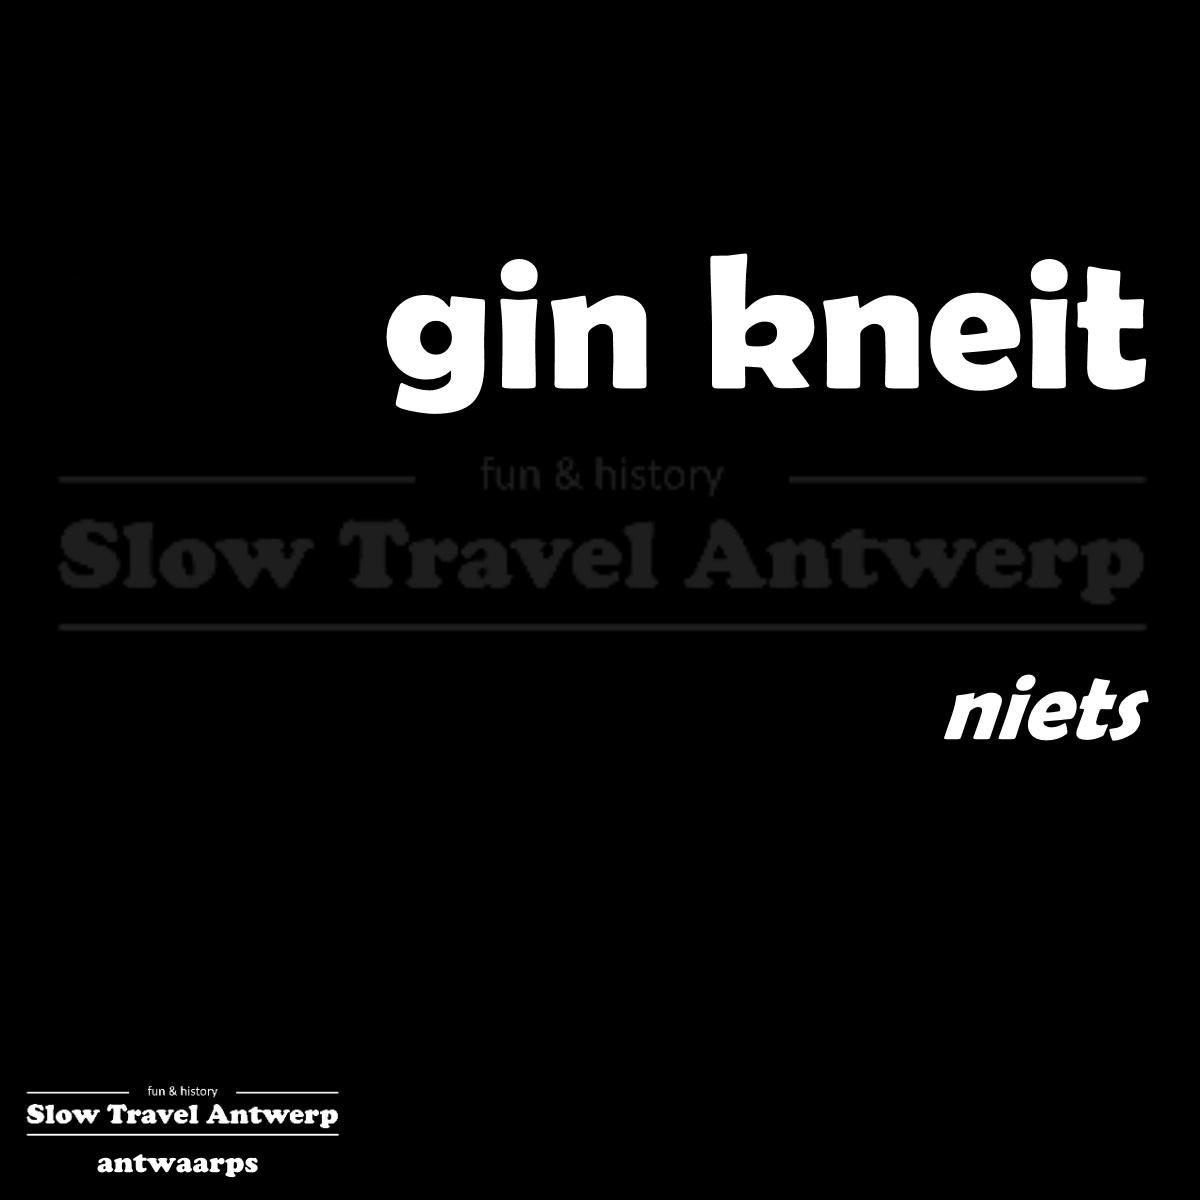 gin kneit – niets – nothing